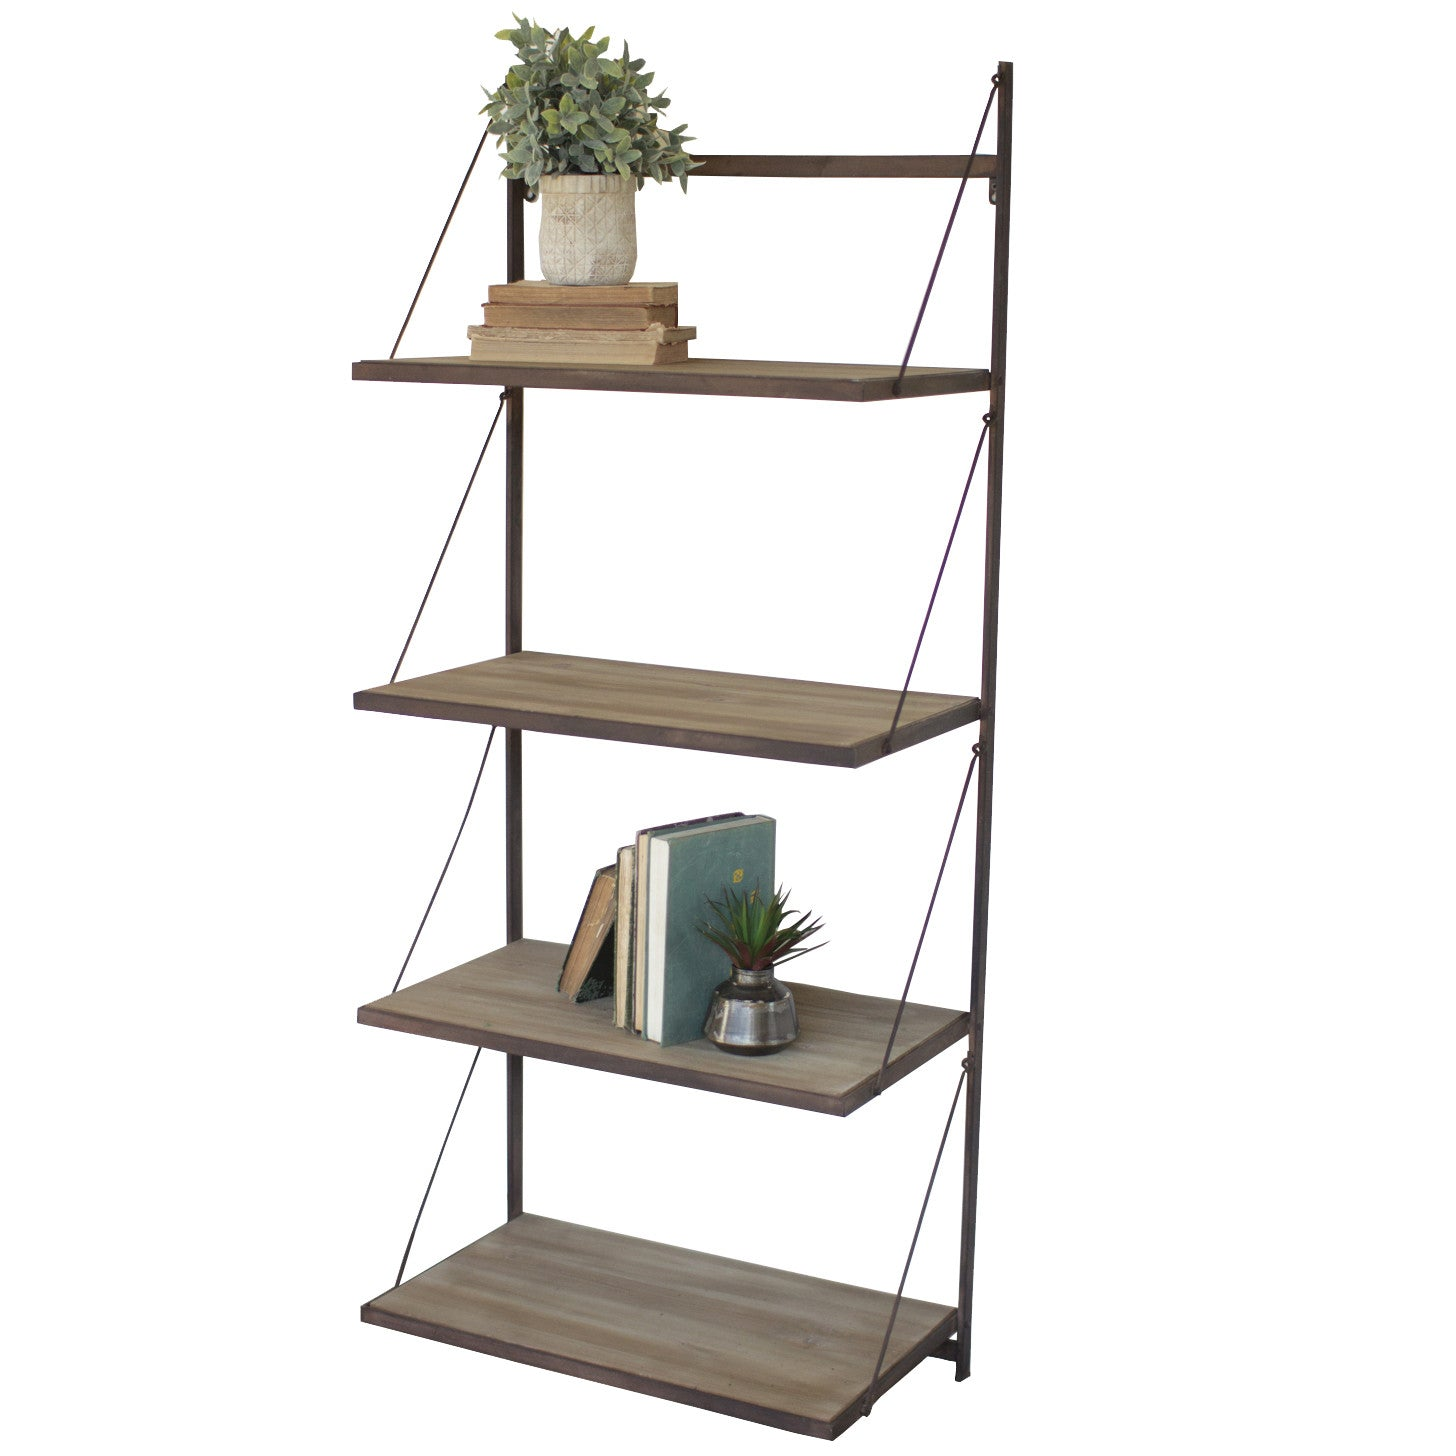 wall shelves & storage - woodwaves